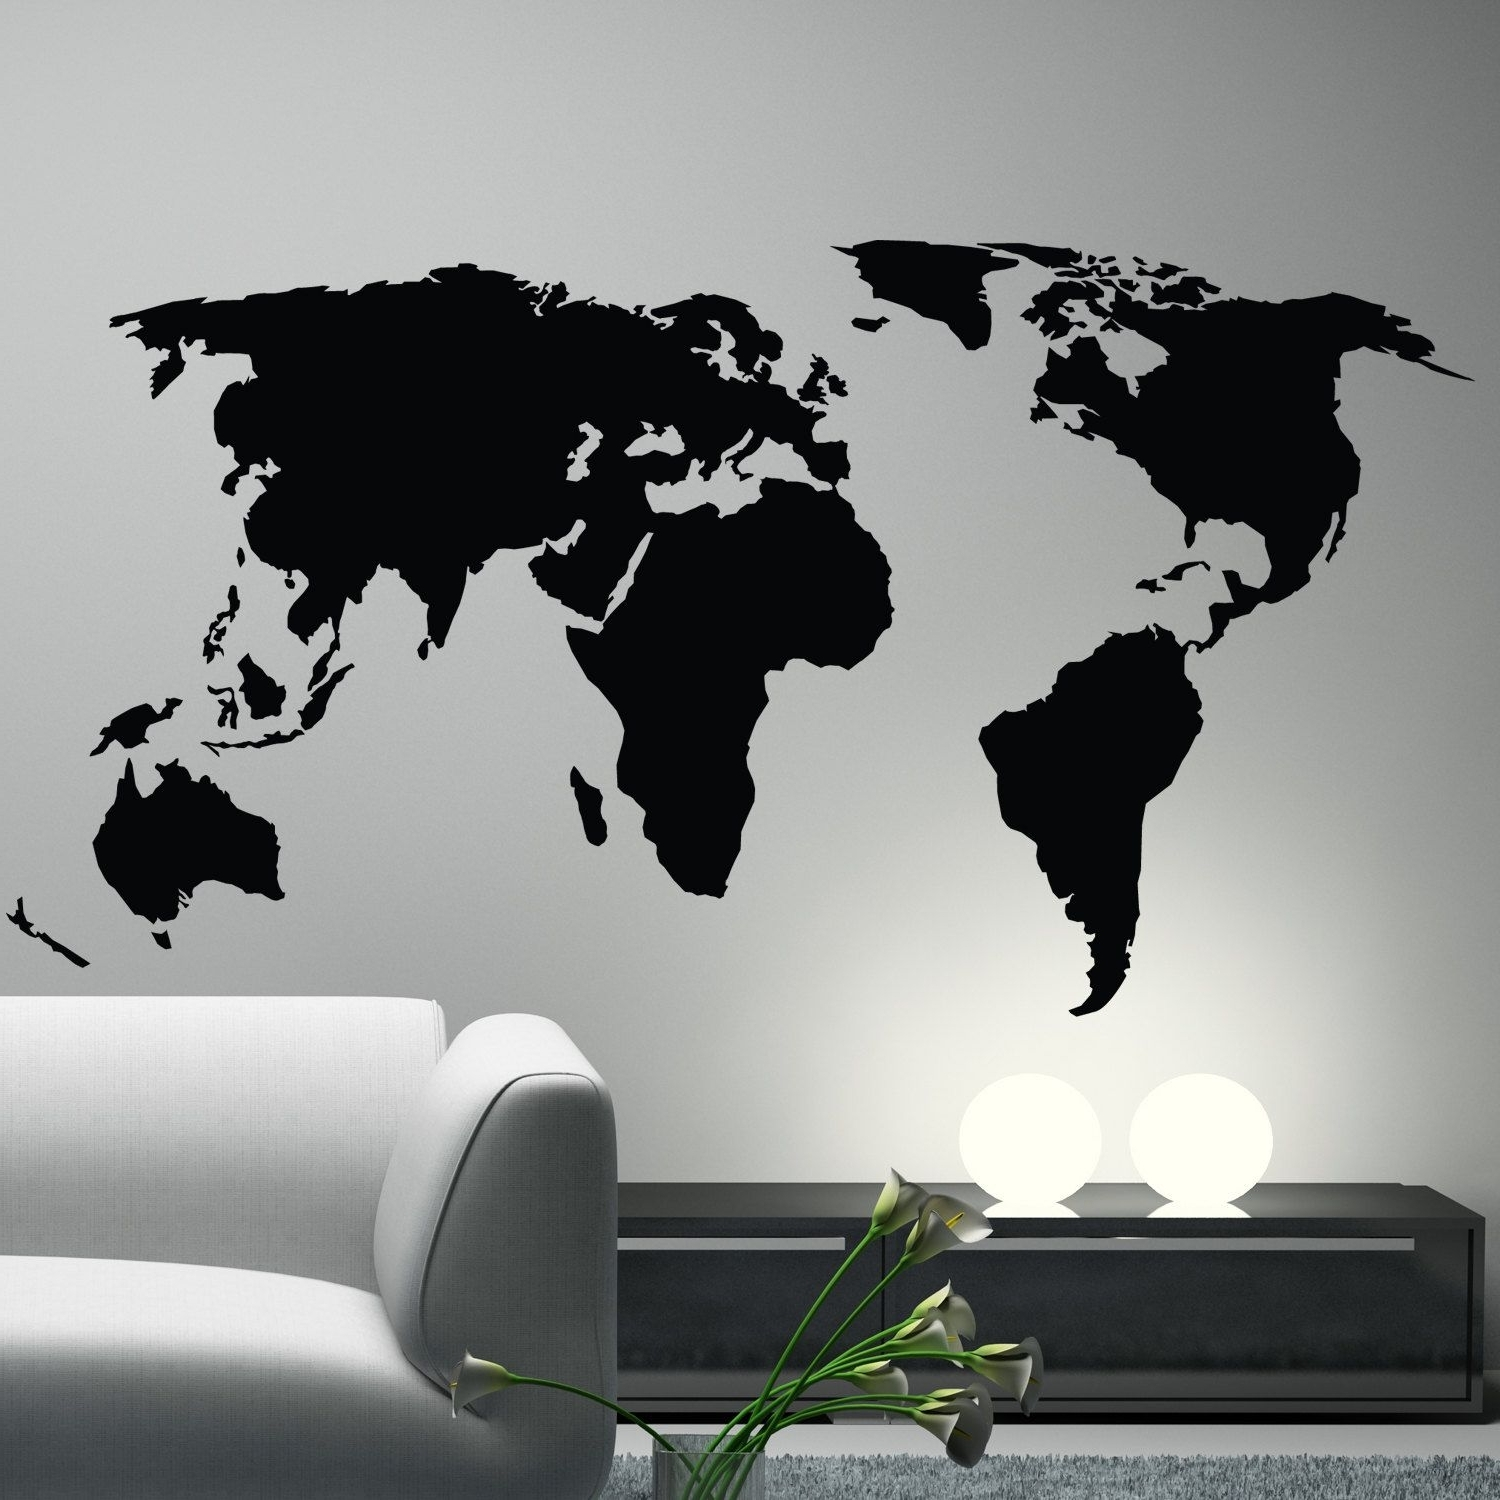 Wall Art Stickers World Map Intended For Trendy Office Decor (View 11 of 15)